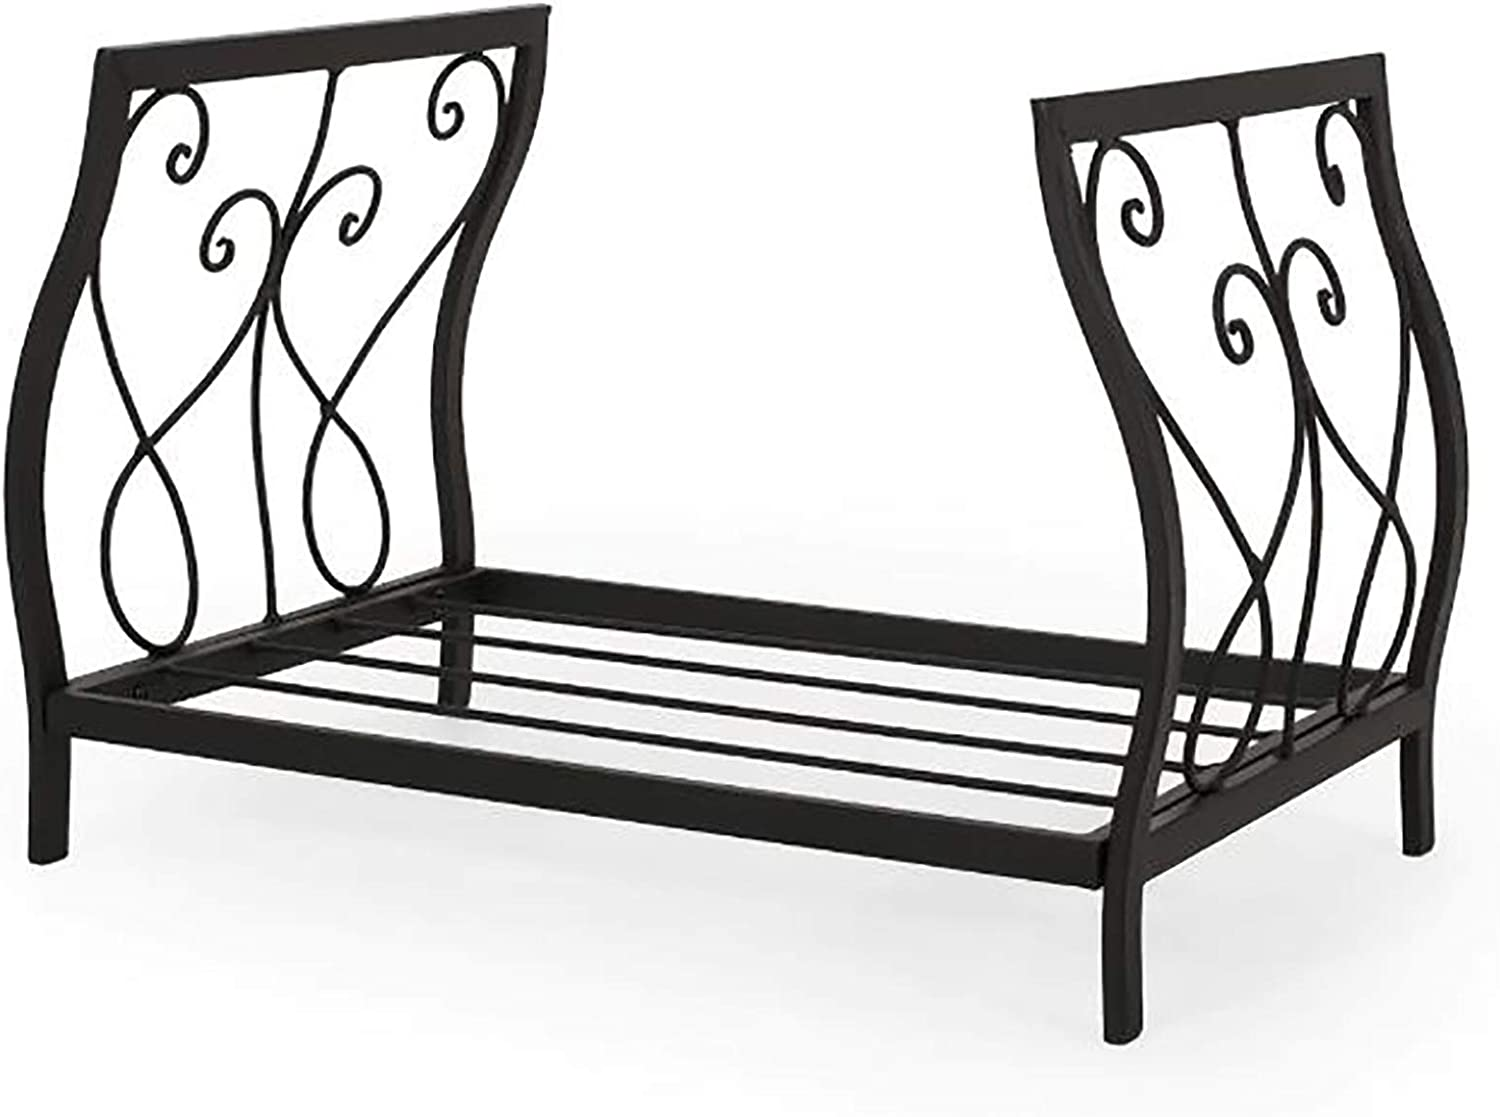 Wrought Iron Heavy Duty Indoor Outdoor Lumber Storage Stacking 22 Inch Scrollwork Firewood Rack//Wood Carrier//Fireplace Log Holder Black